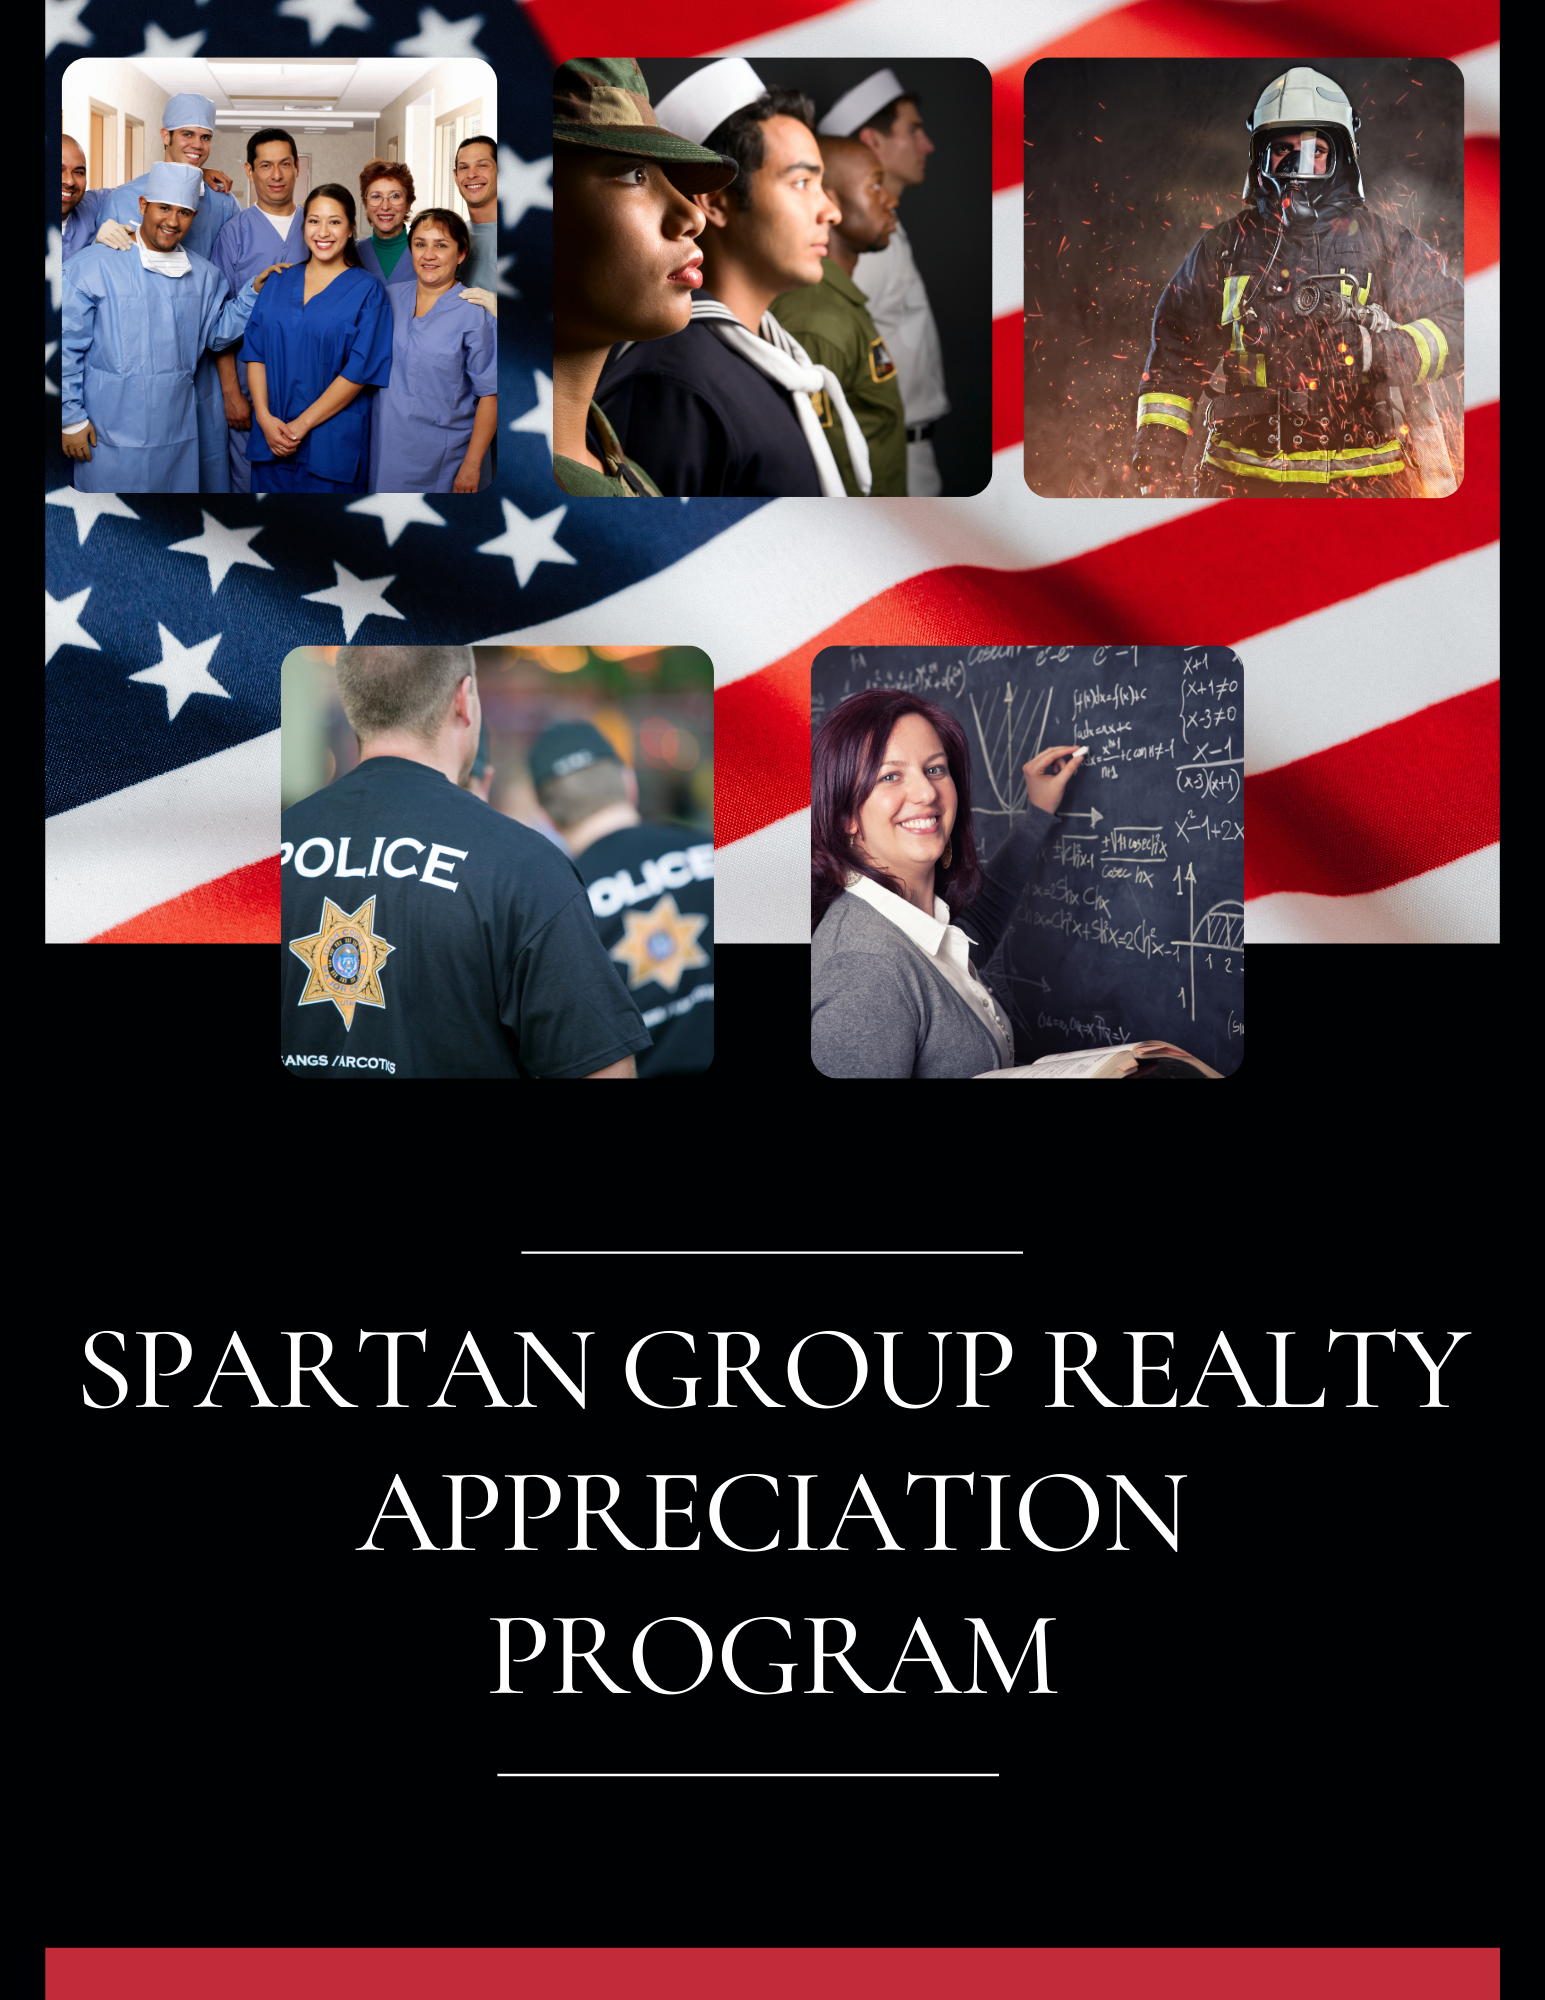 Spartan Appreciation Program Page 1